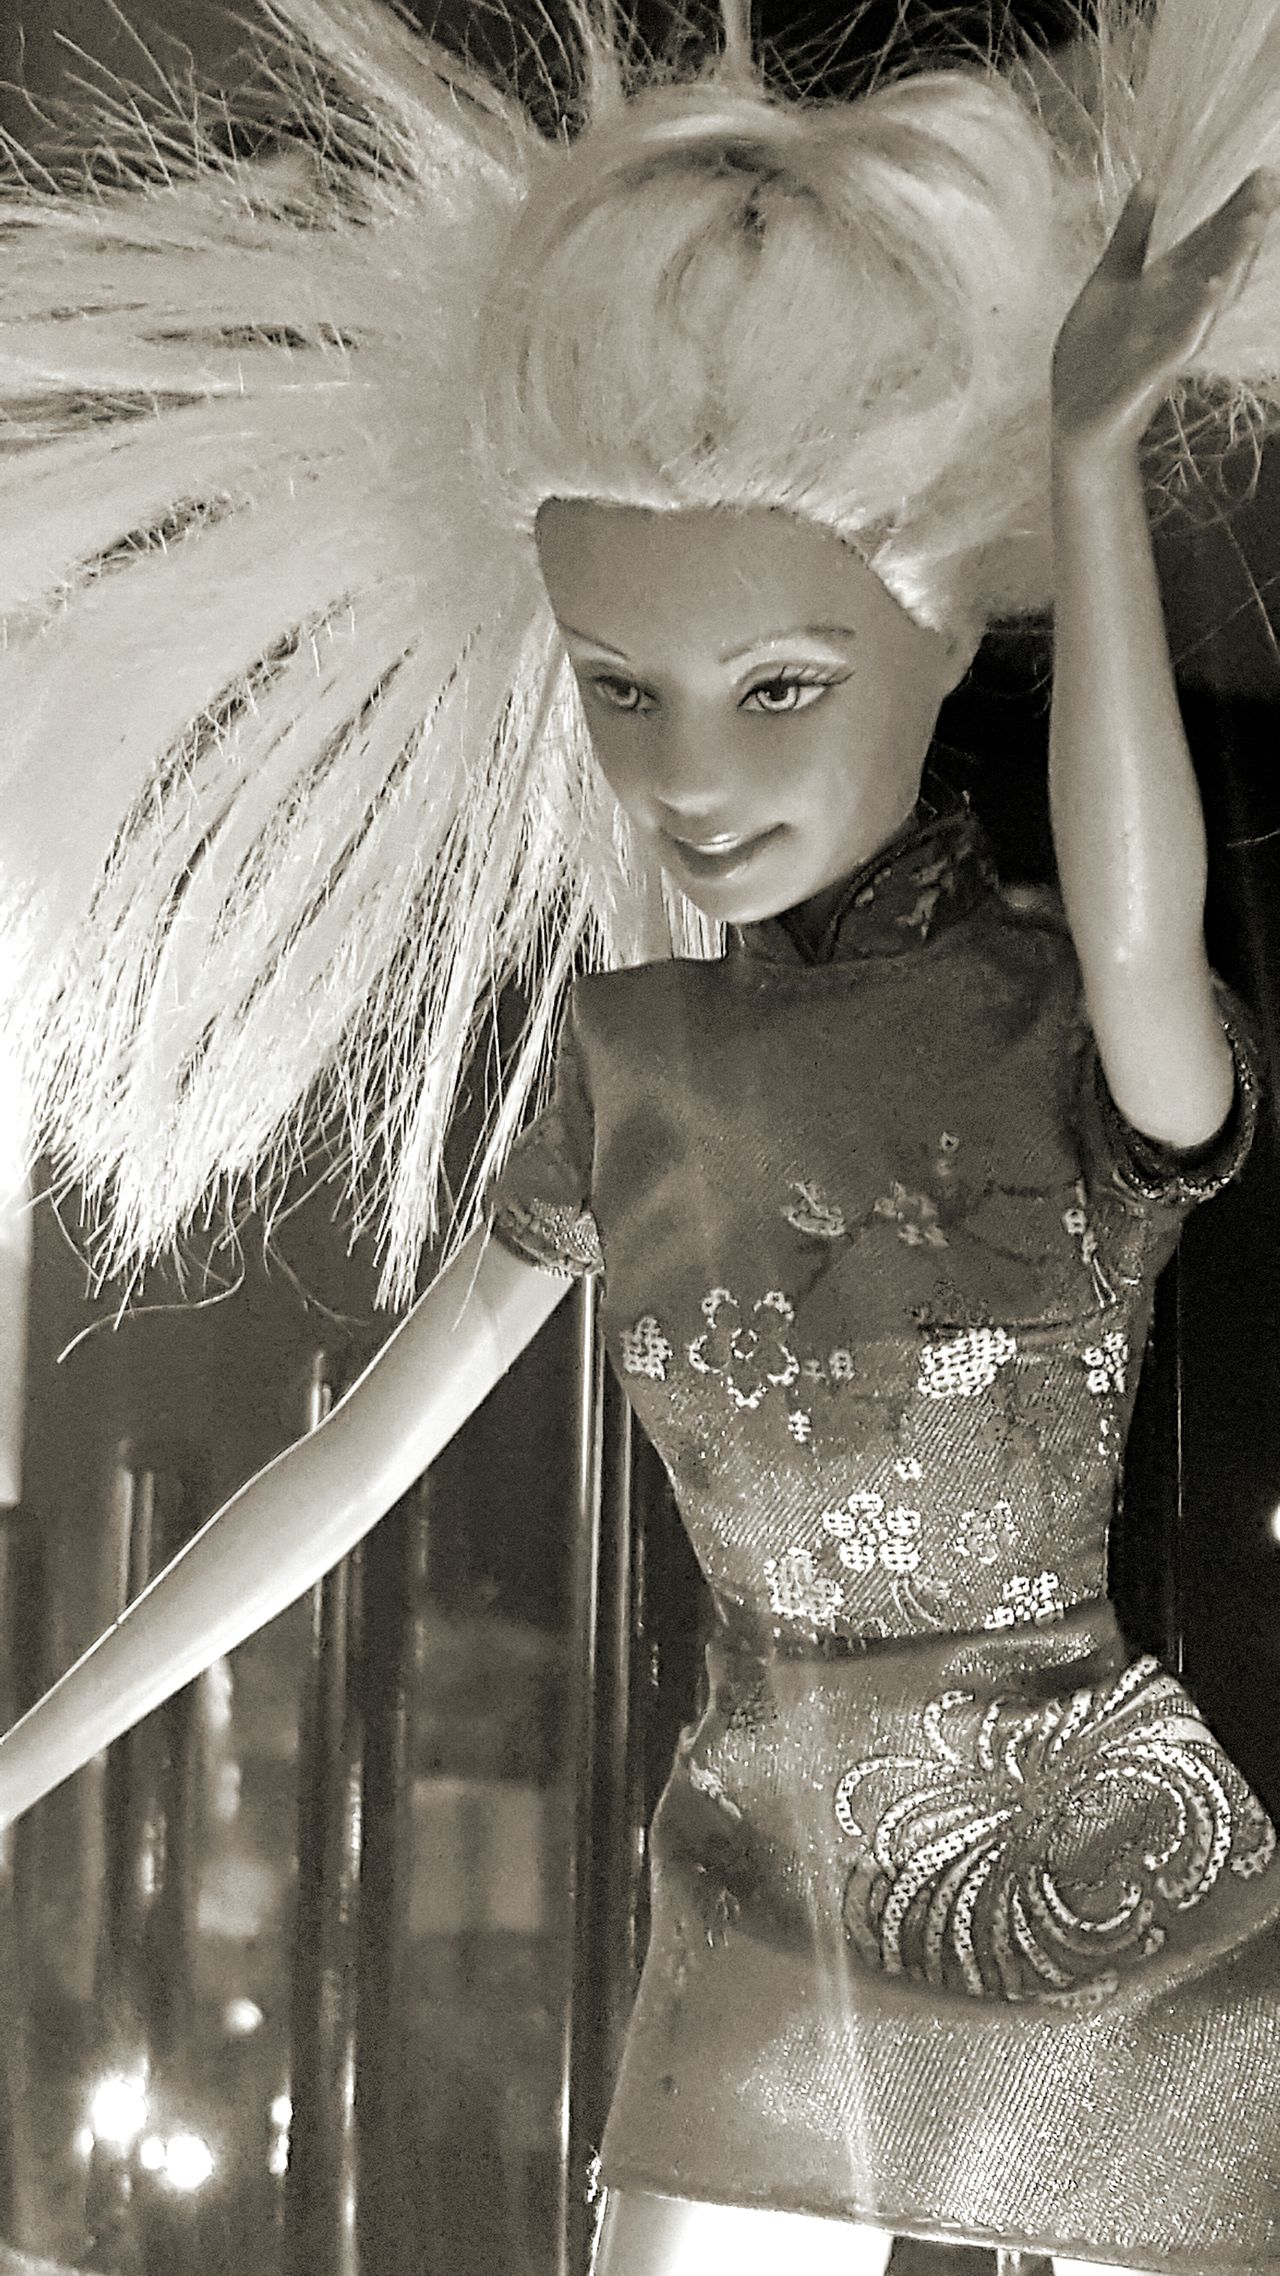 Disco Barbie Barbie World Barbiedoll Black And White Photography Doll Photography